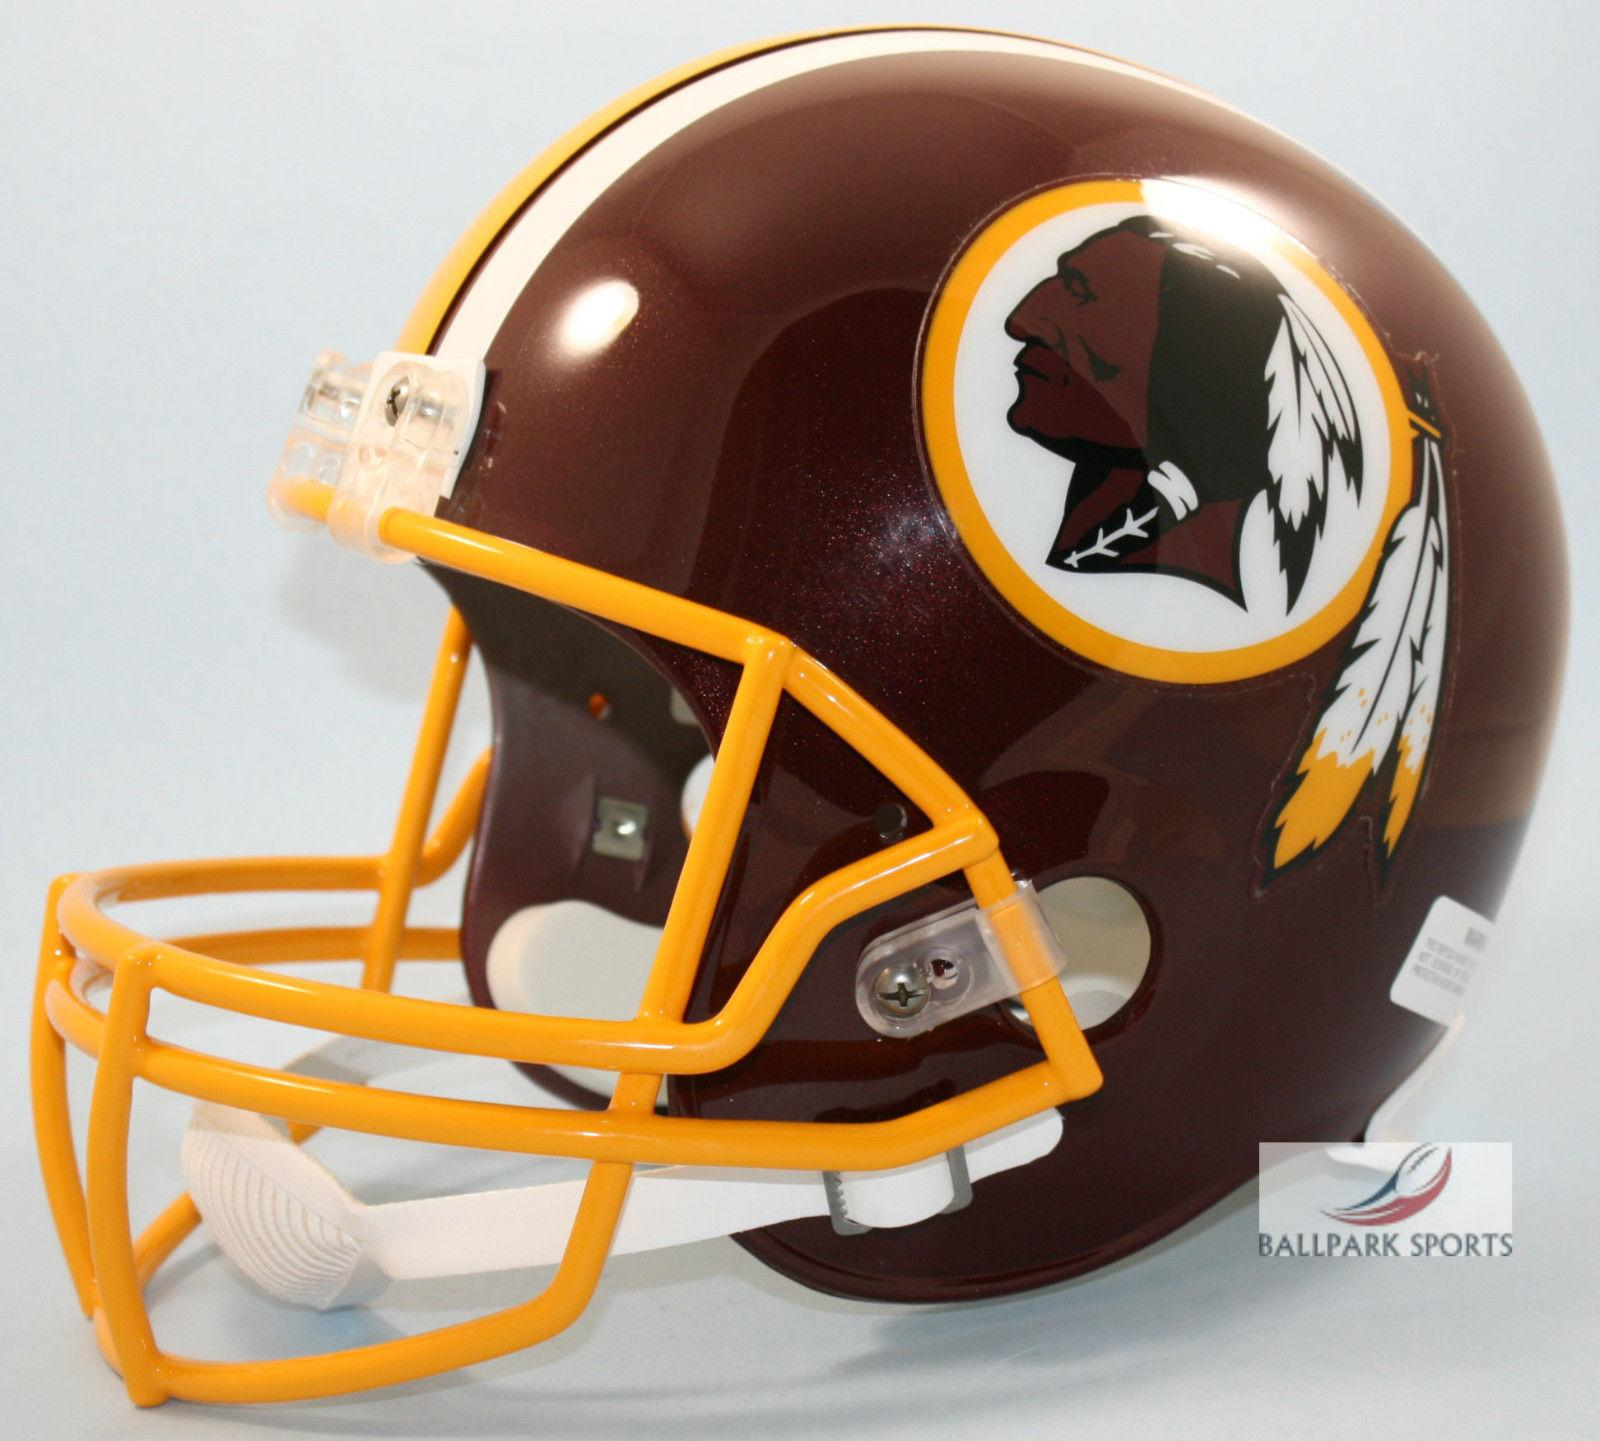 Washington Redskins ヘルメット